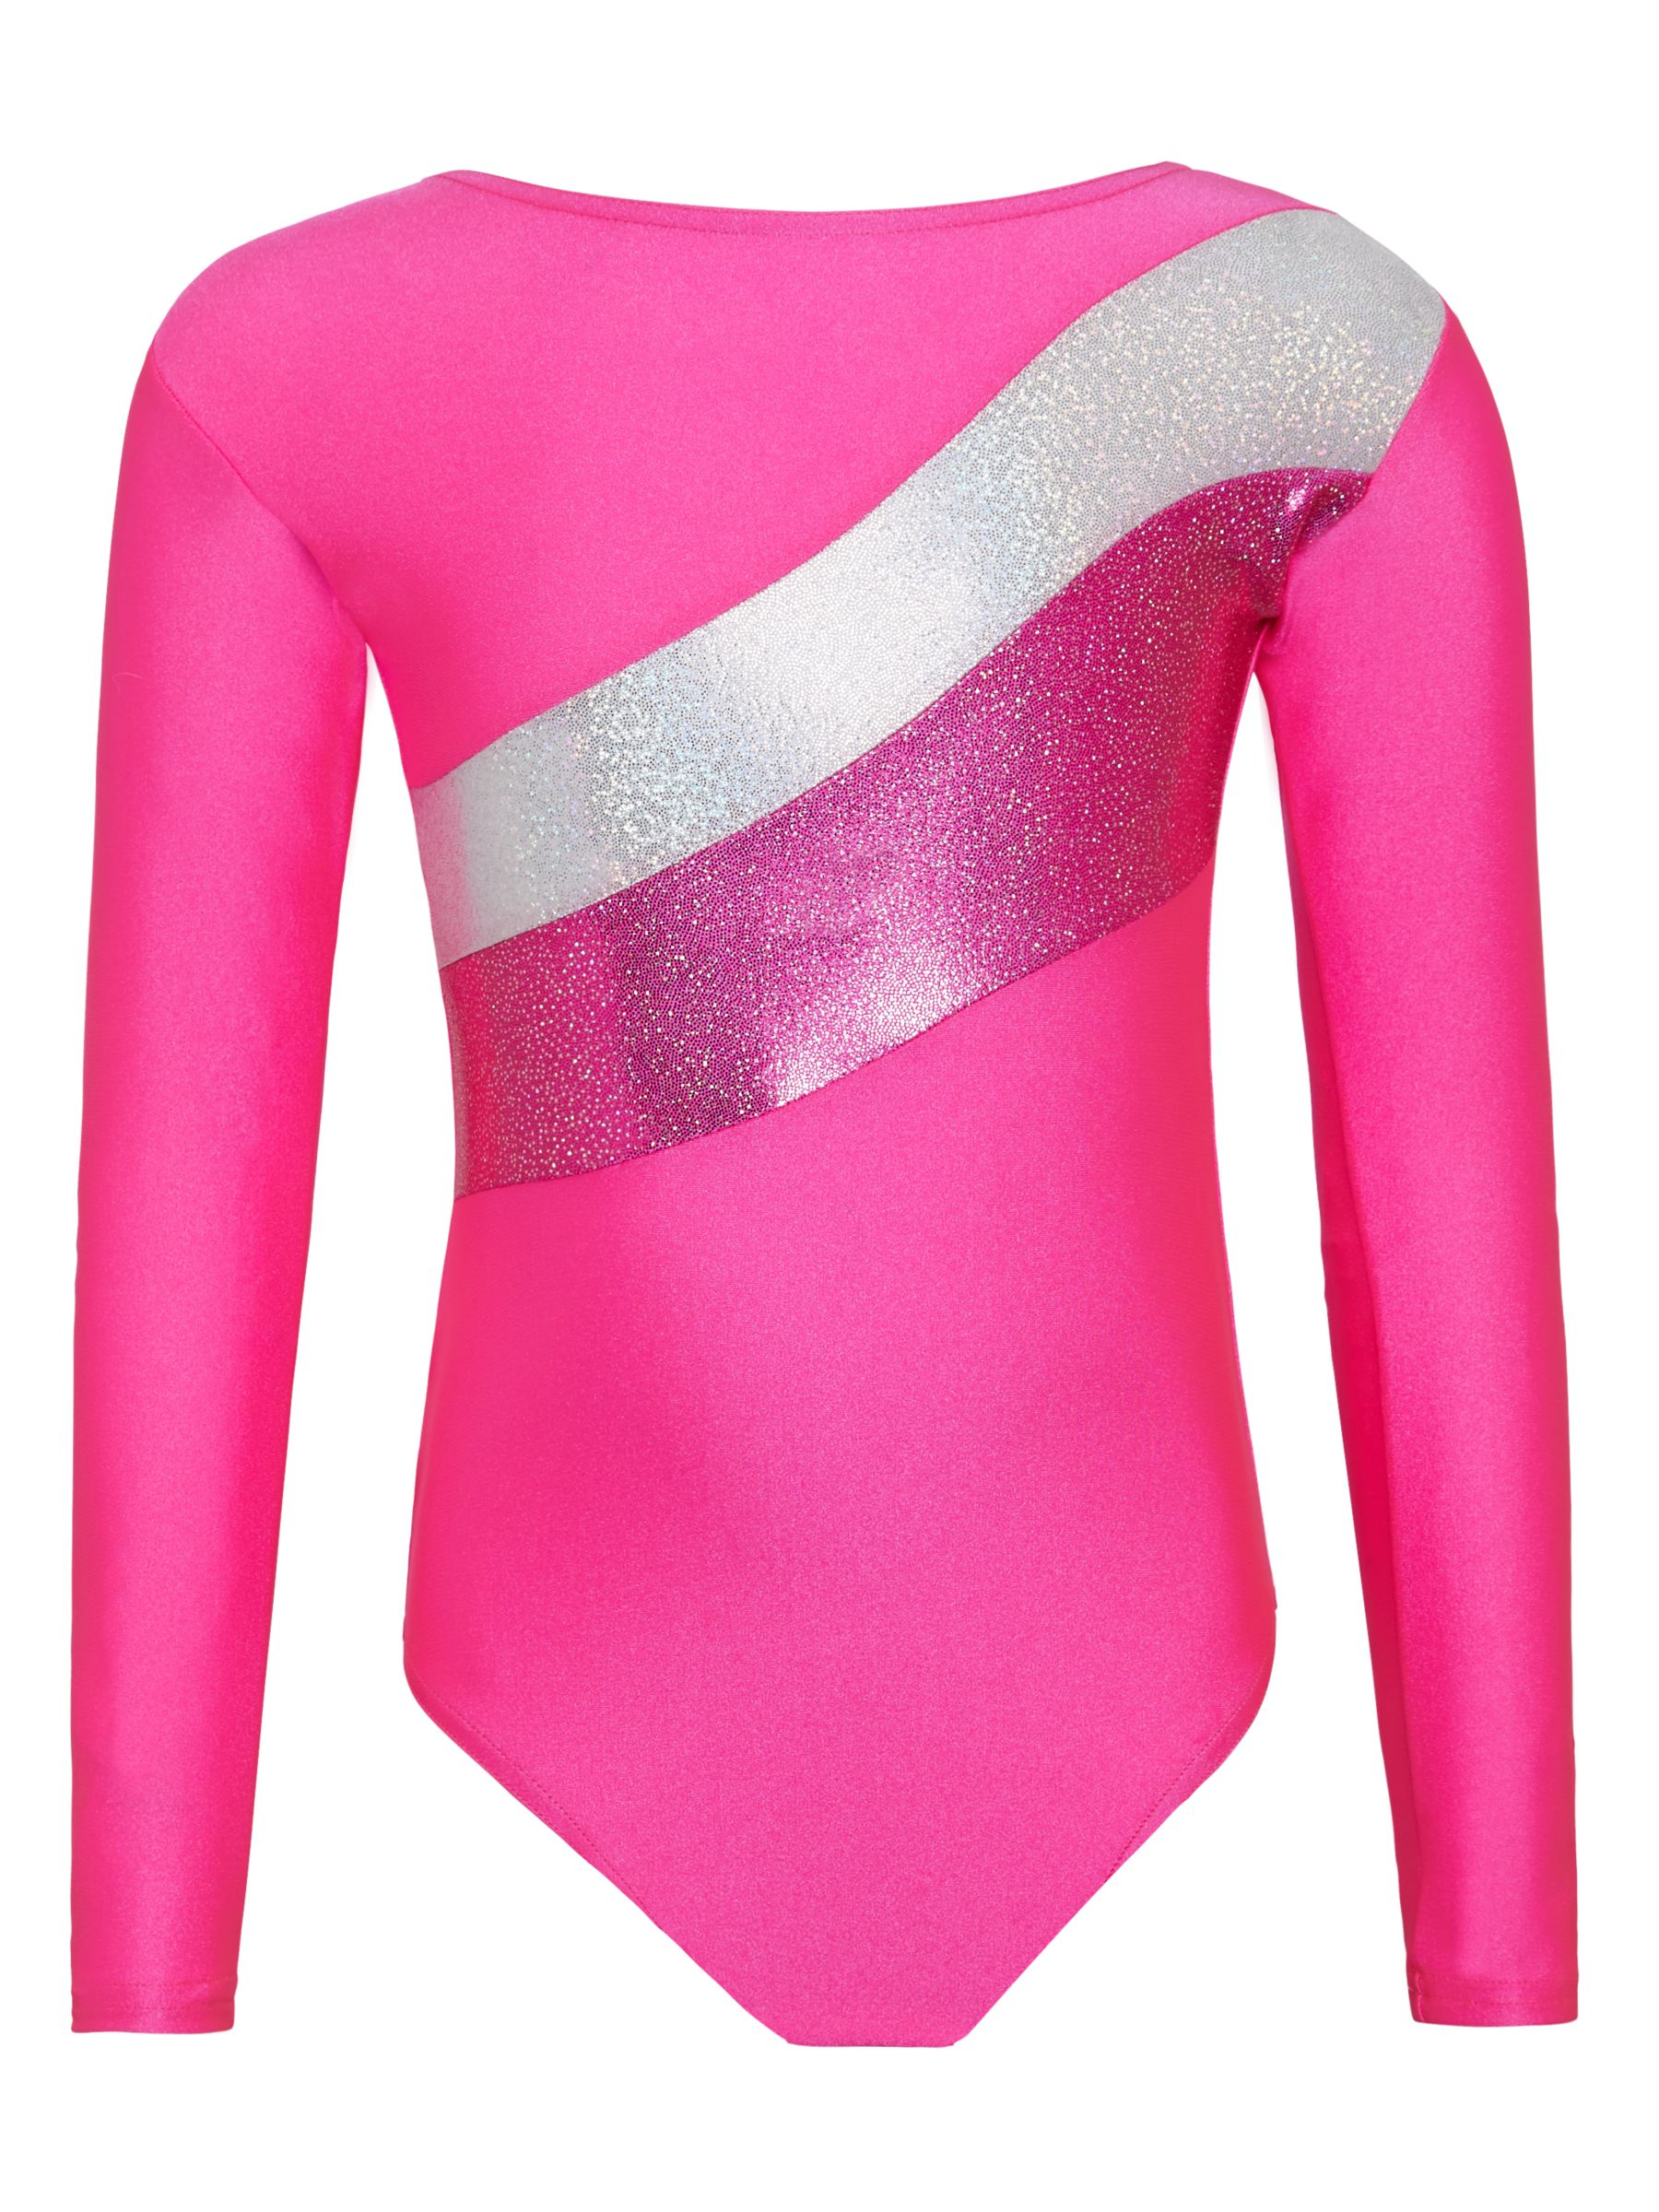 Tappers and Pointers Tappers and Pointers Sparkling Stripes Gymnastics Leotard